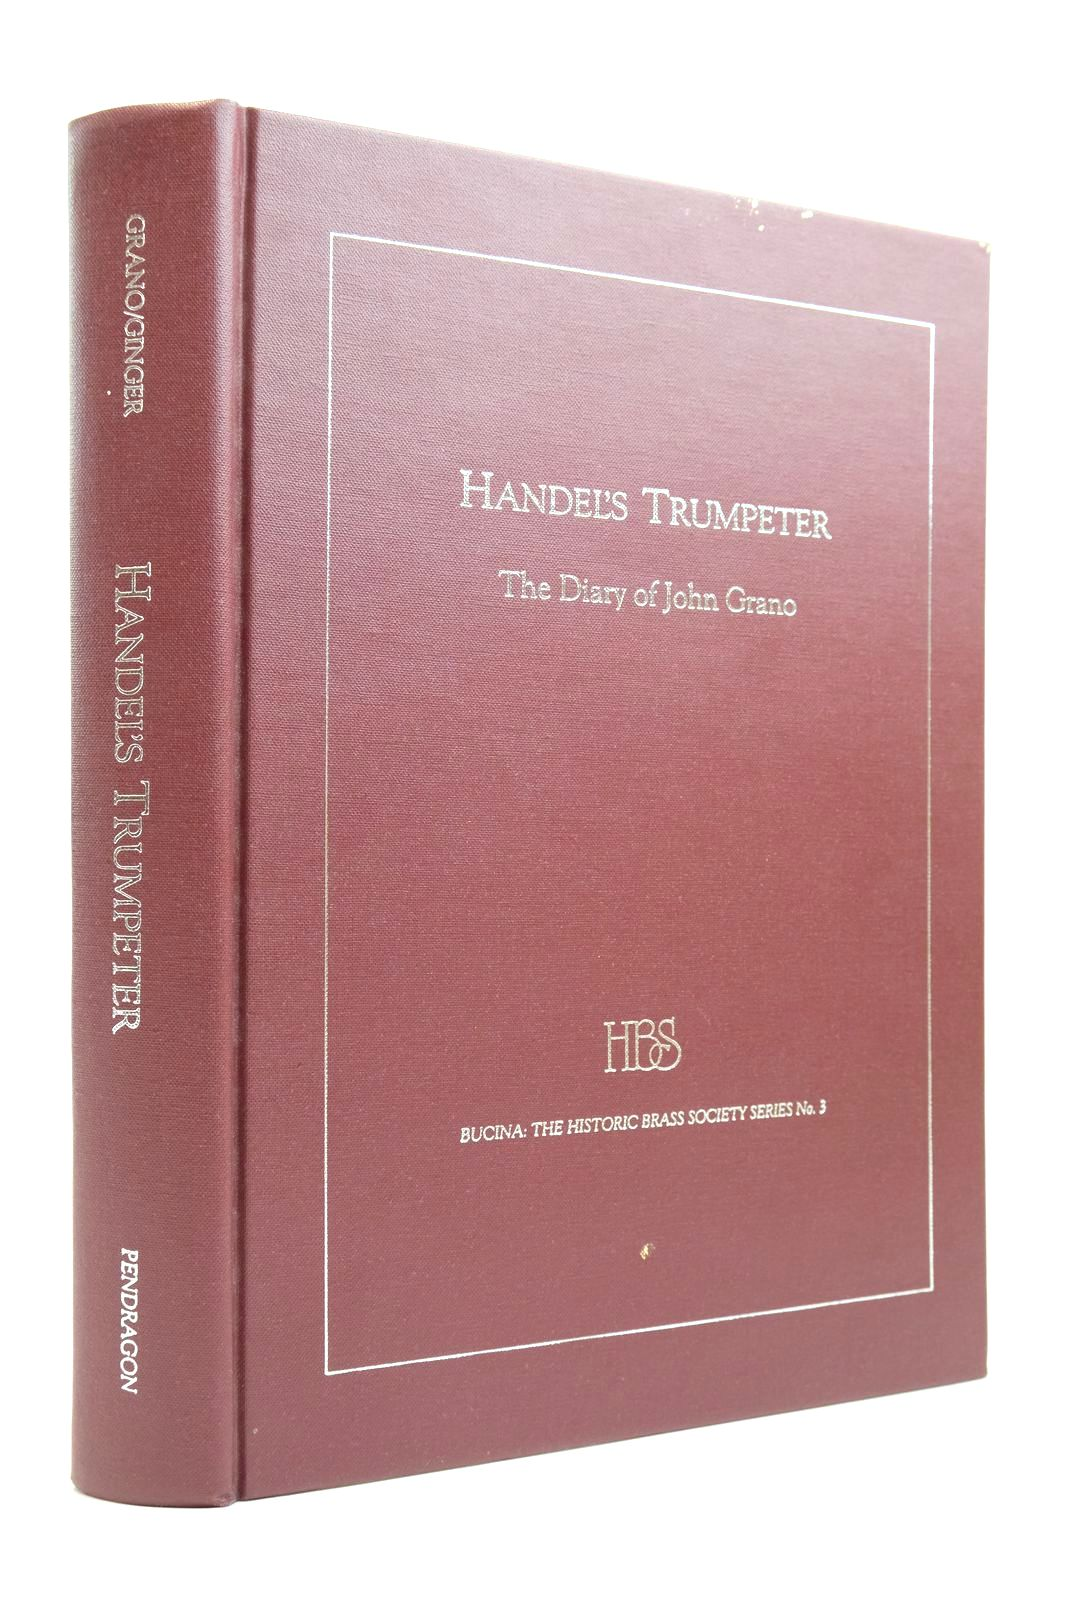 Photo of HANDEL'S TRUMPETER: THE DIARY OF JOHN GRANO- Stock Number: 2134686